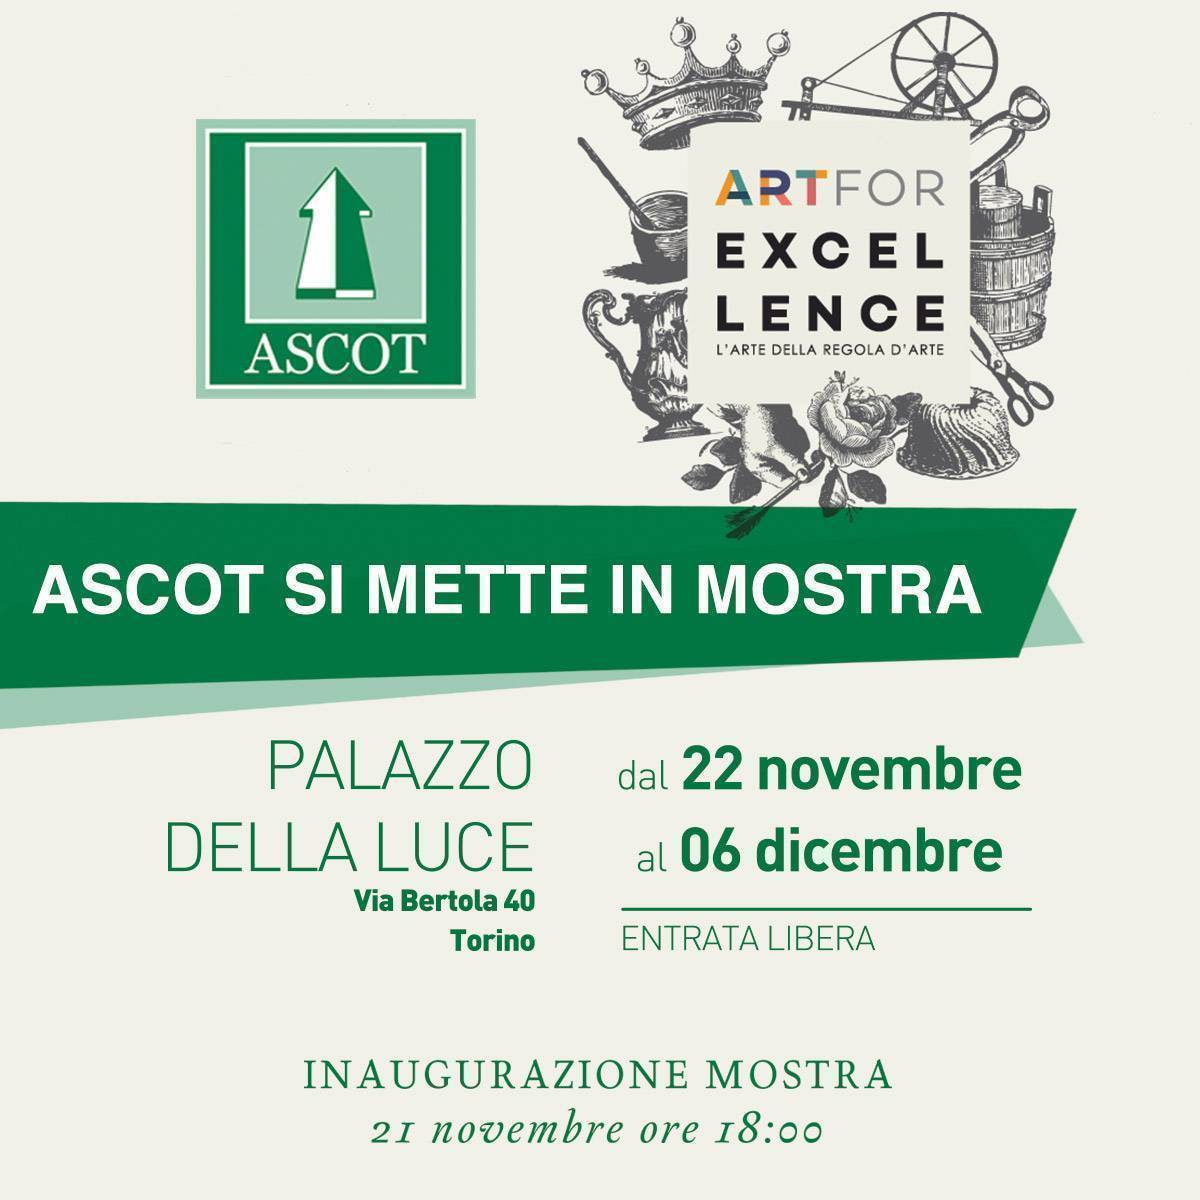 Conto alla rovescia per Art for Excellence 2018